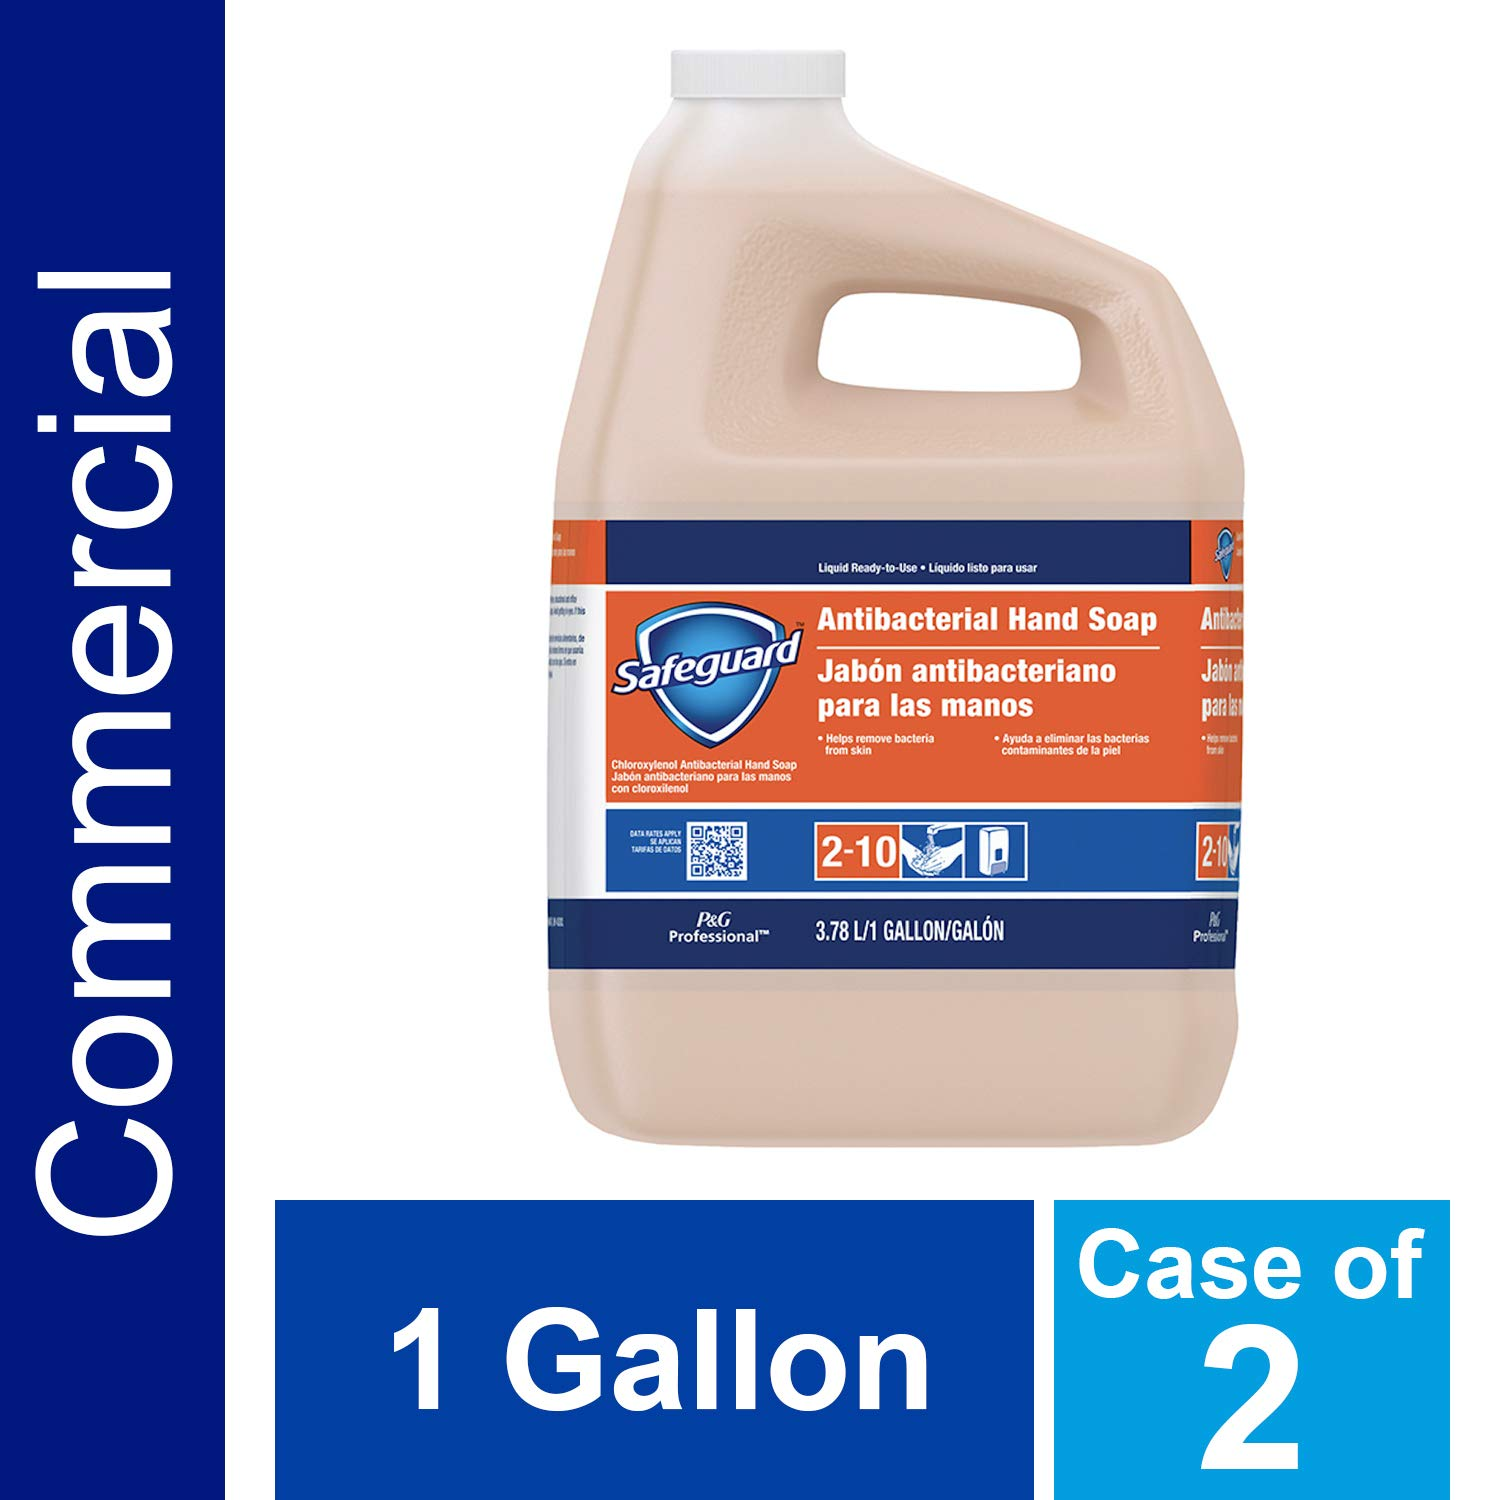 P&G Professional Antibacterial Hand Soap from Safegaurd Professional, Bulk Liquid Hand Soap Refill, 1 Gal. (Case of 2) - 00037000026990 by P&G Professional